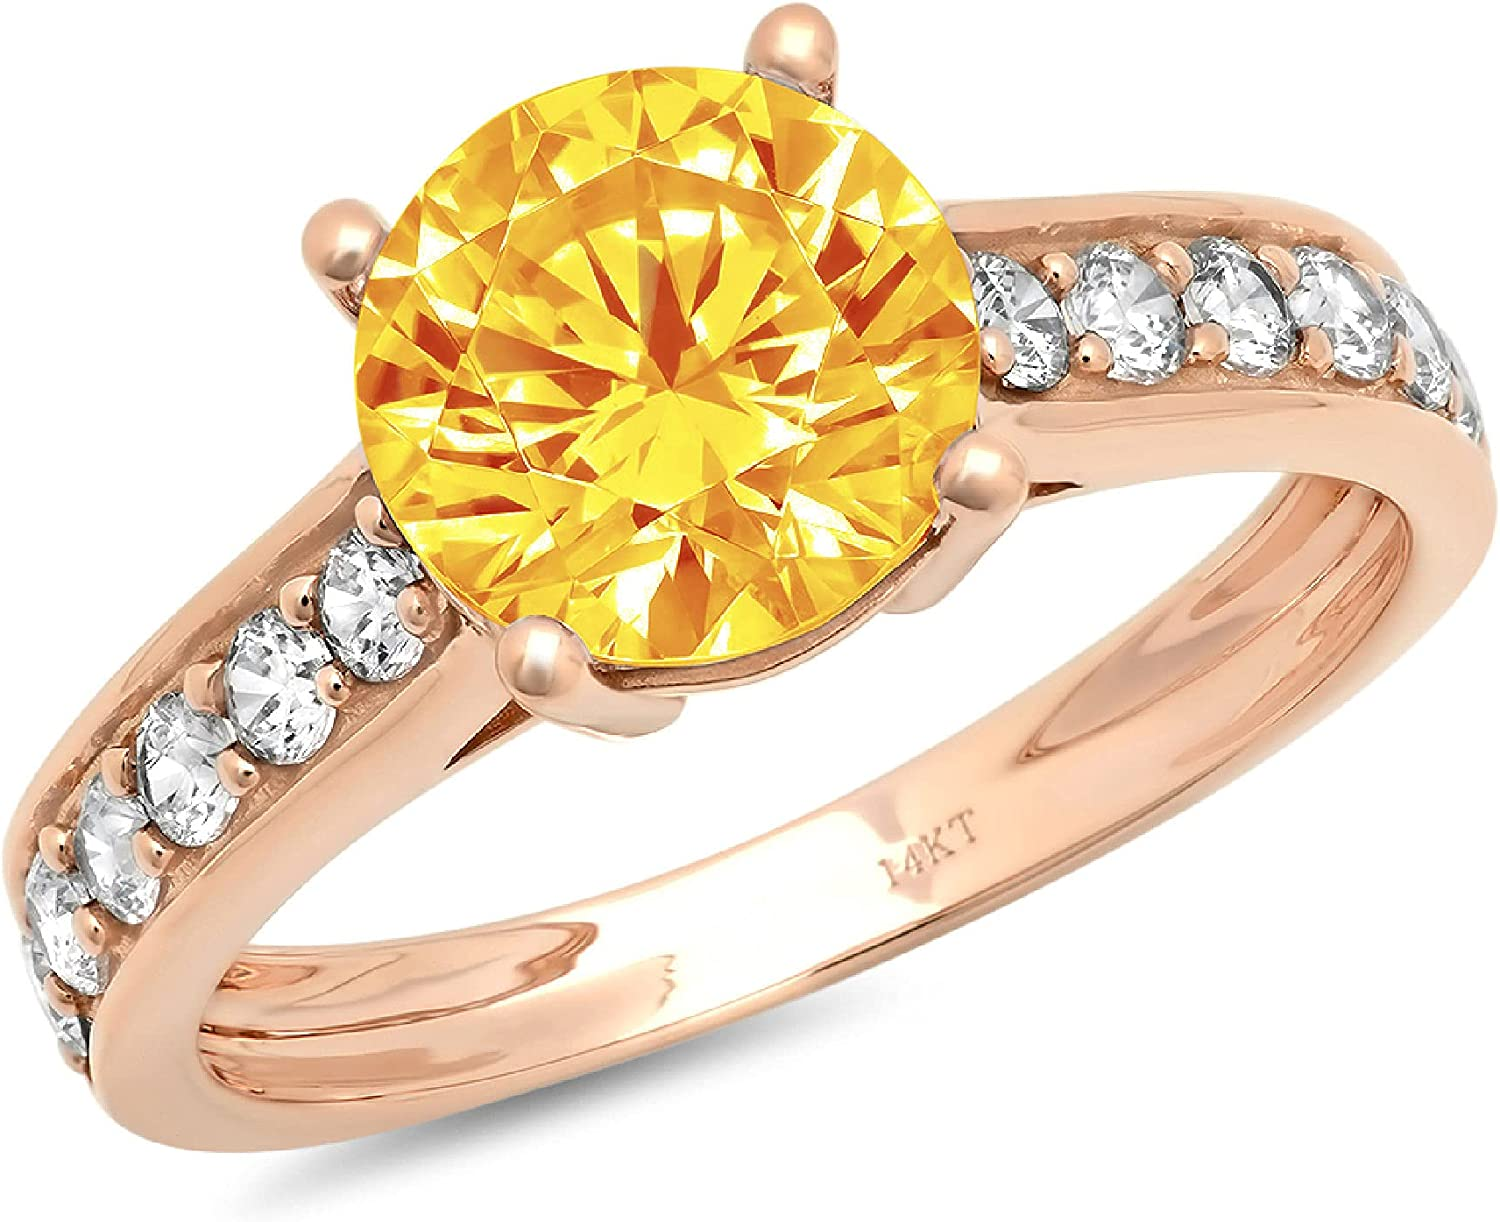 2.25 ct Brilliant Round Cut Solitaire Accent Genuine Flawless Natural Yellow Citrine Gemstone Engagement Promise Statement Anniversary Bridal Wedding Ring Solid 18K Rose Gold